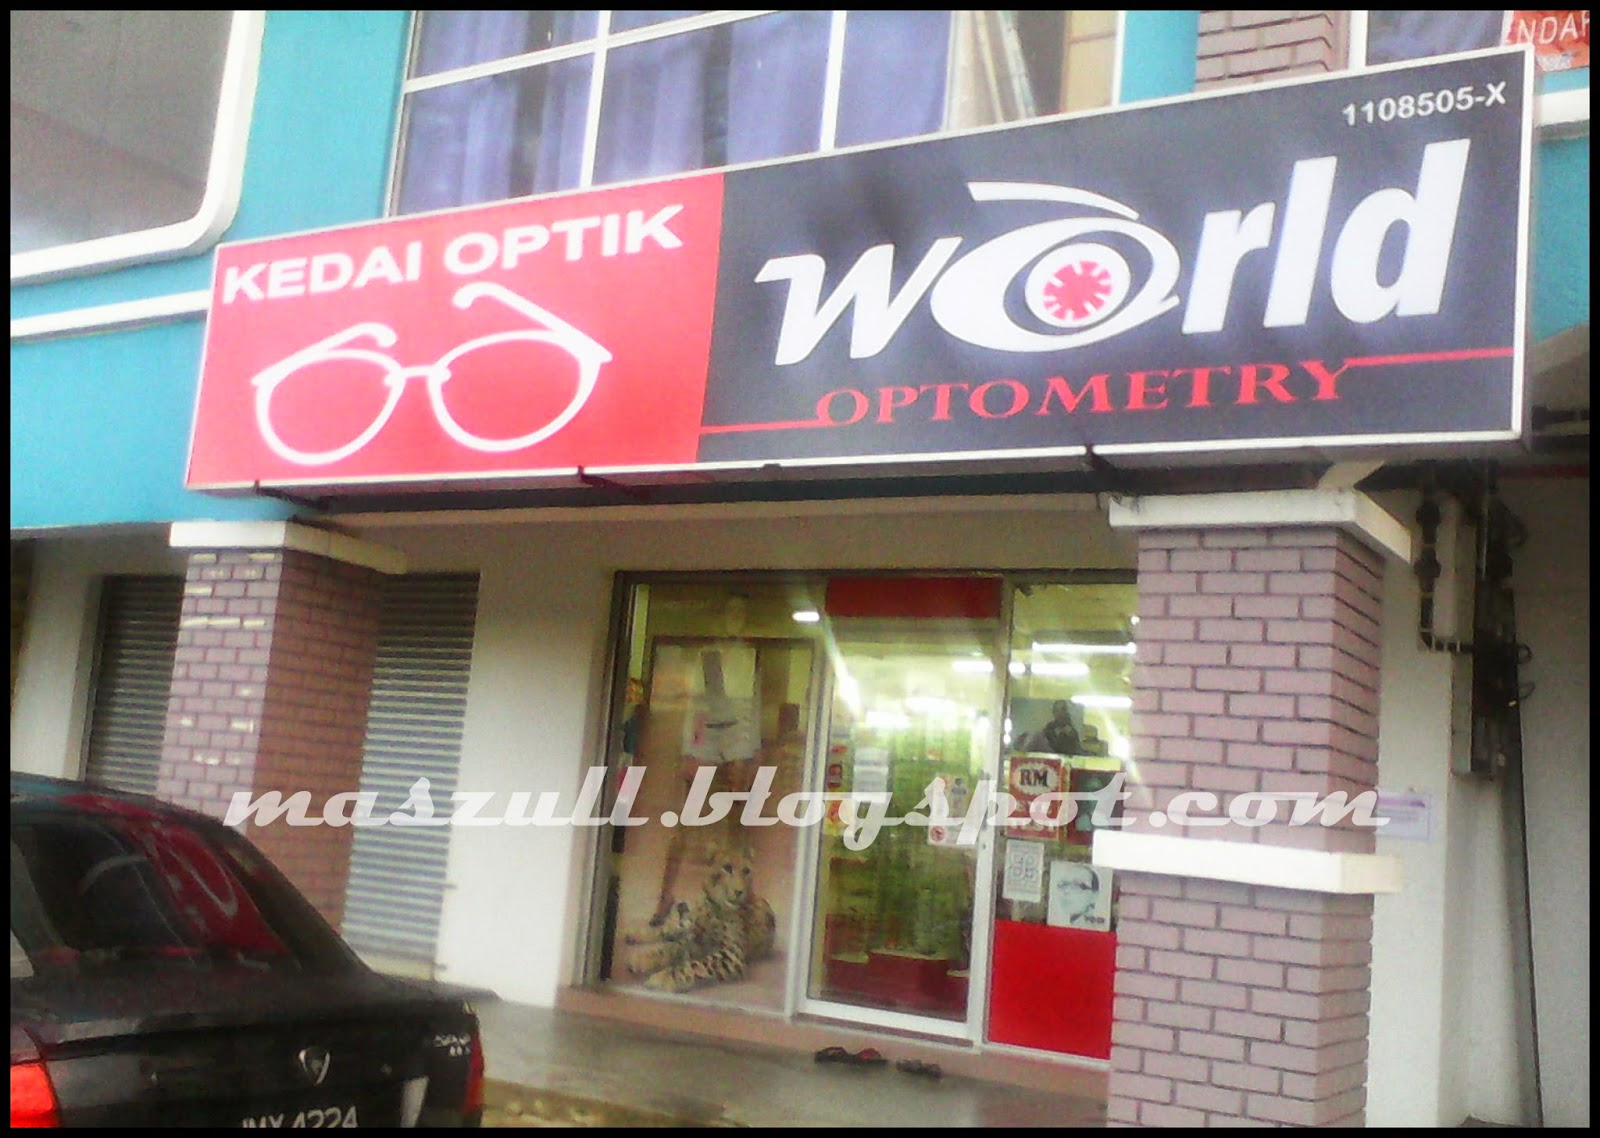 Kedai Optik World Optometry Memang Best